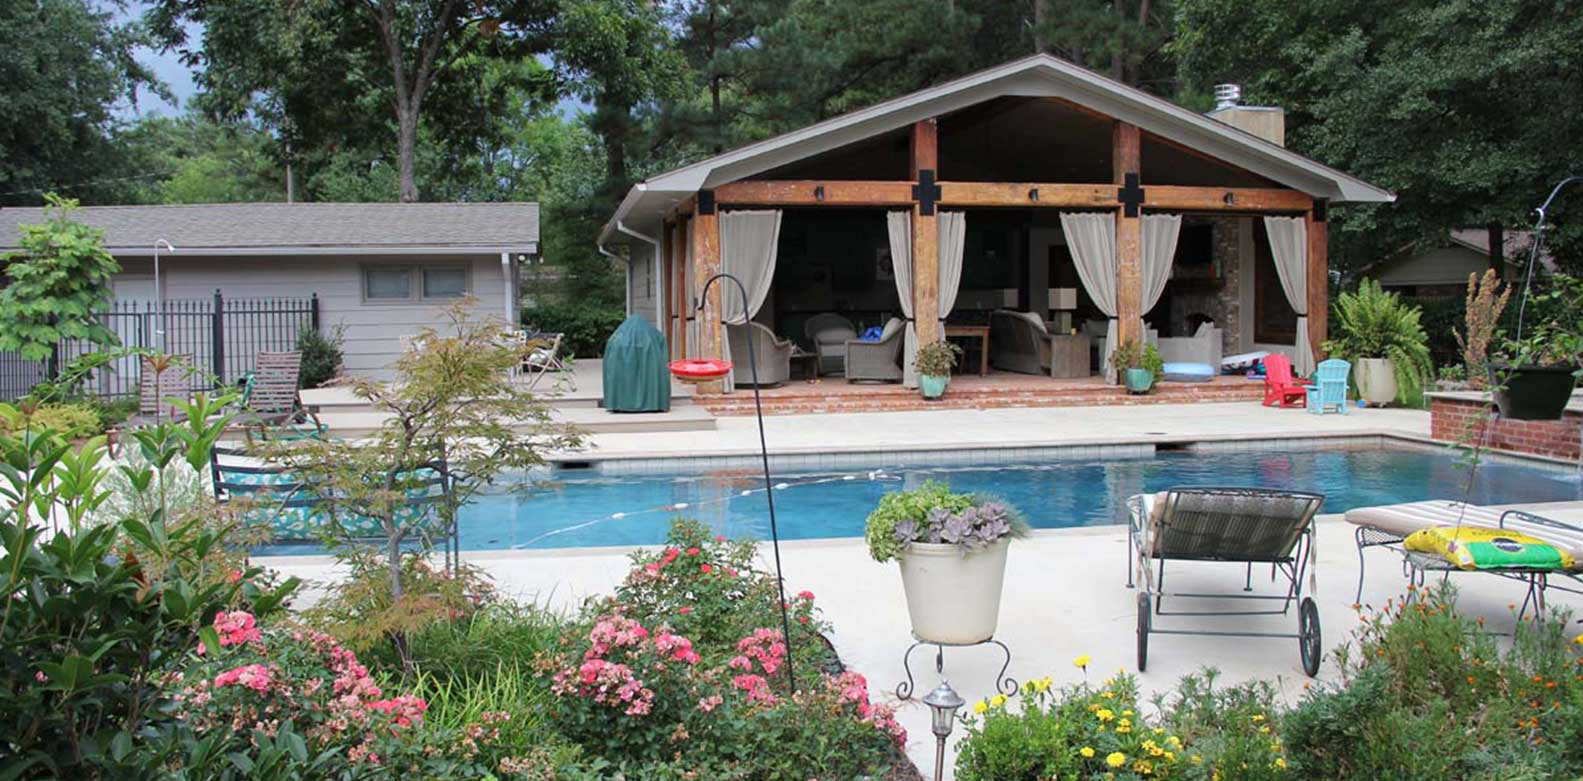 Backyard-pool-house-addition-Canton-MS1